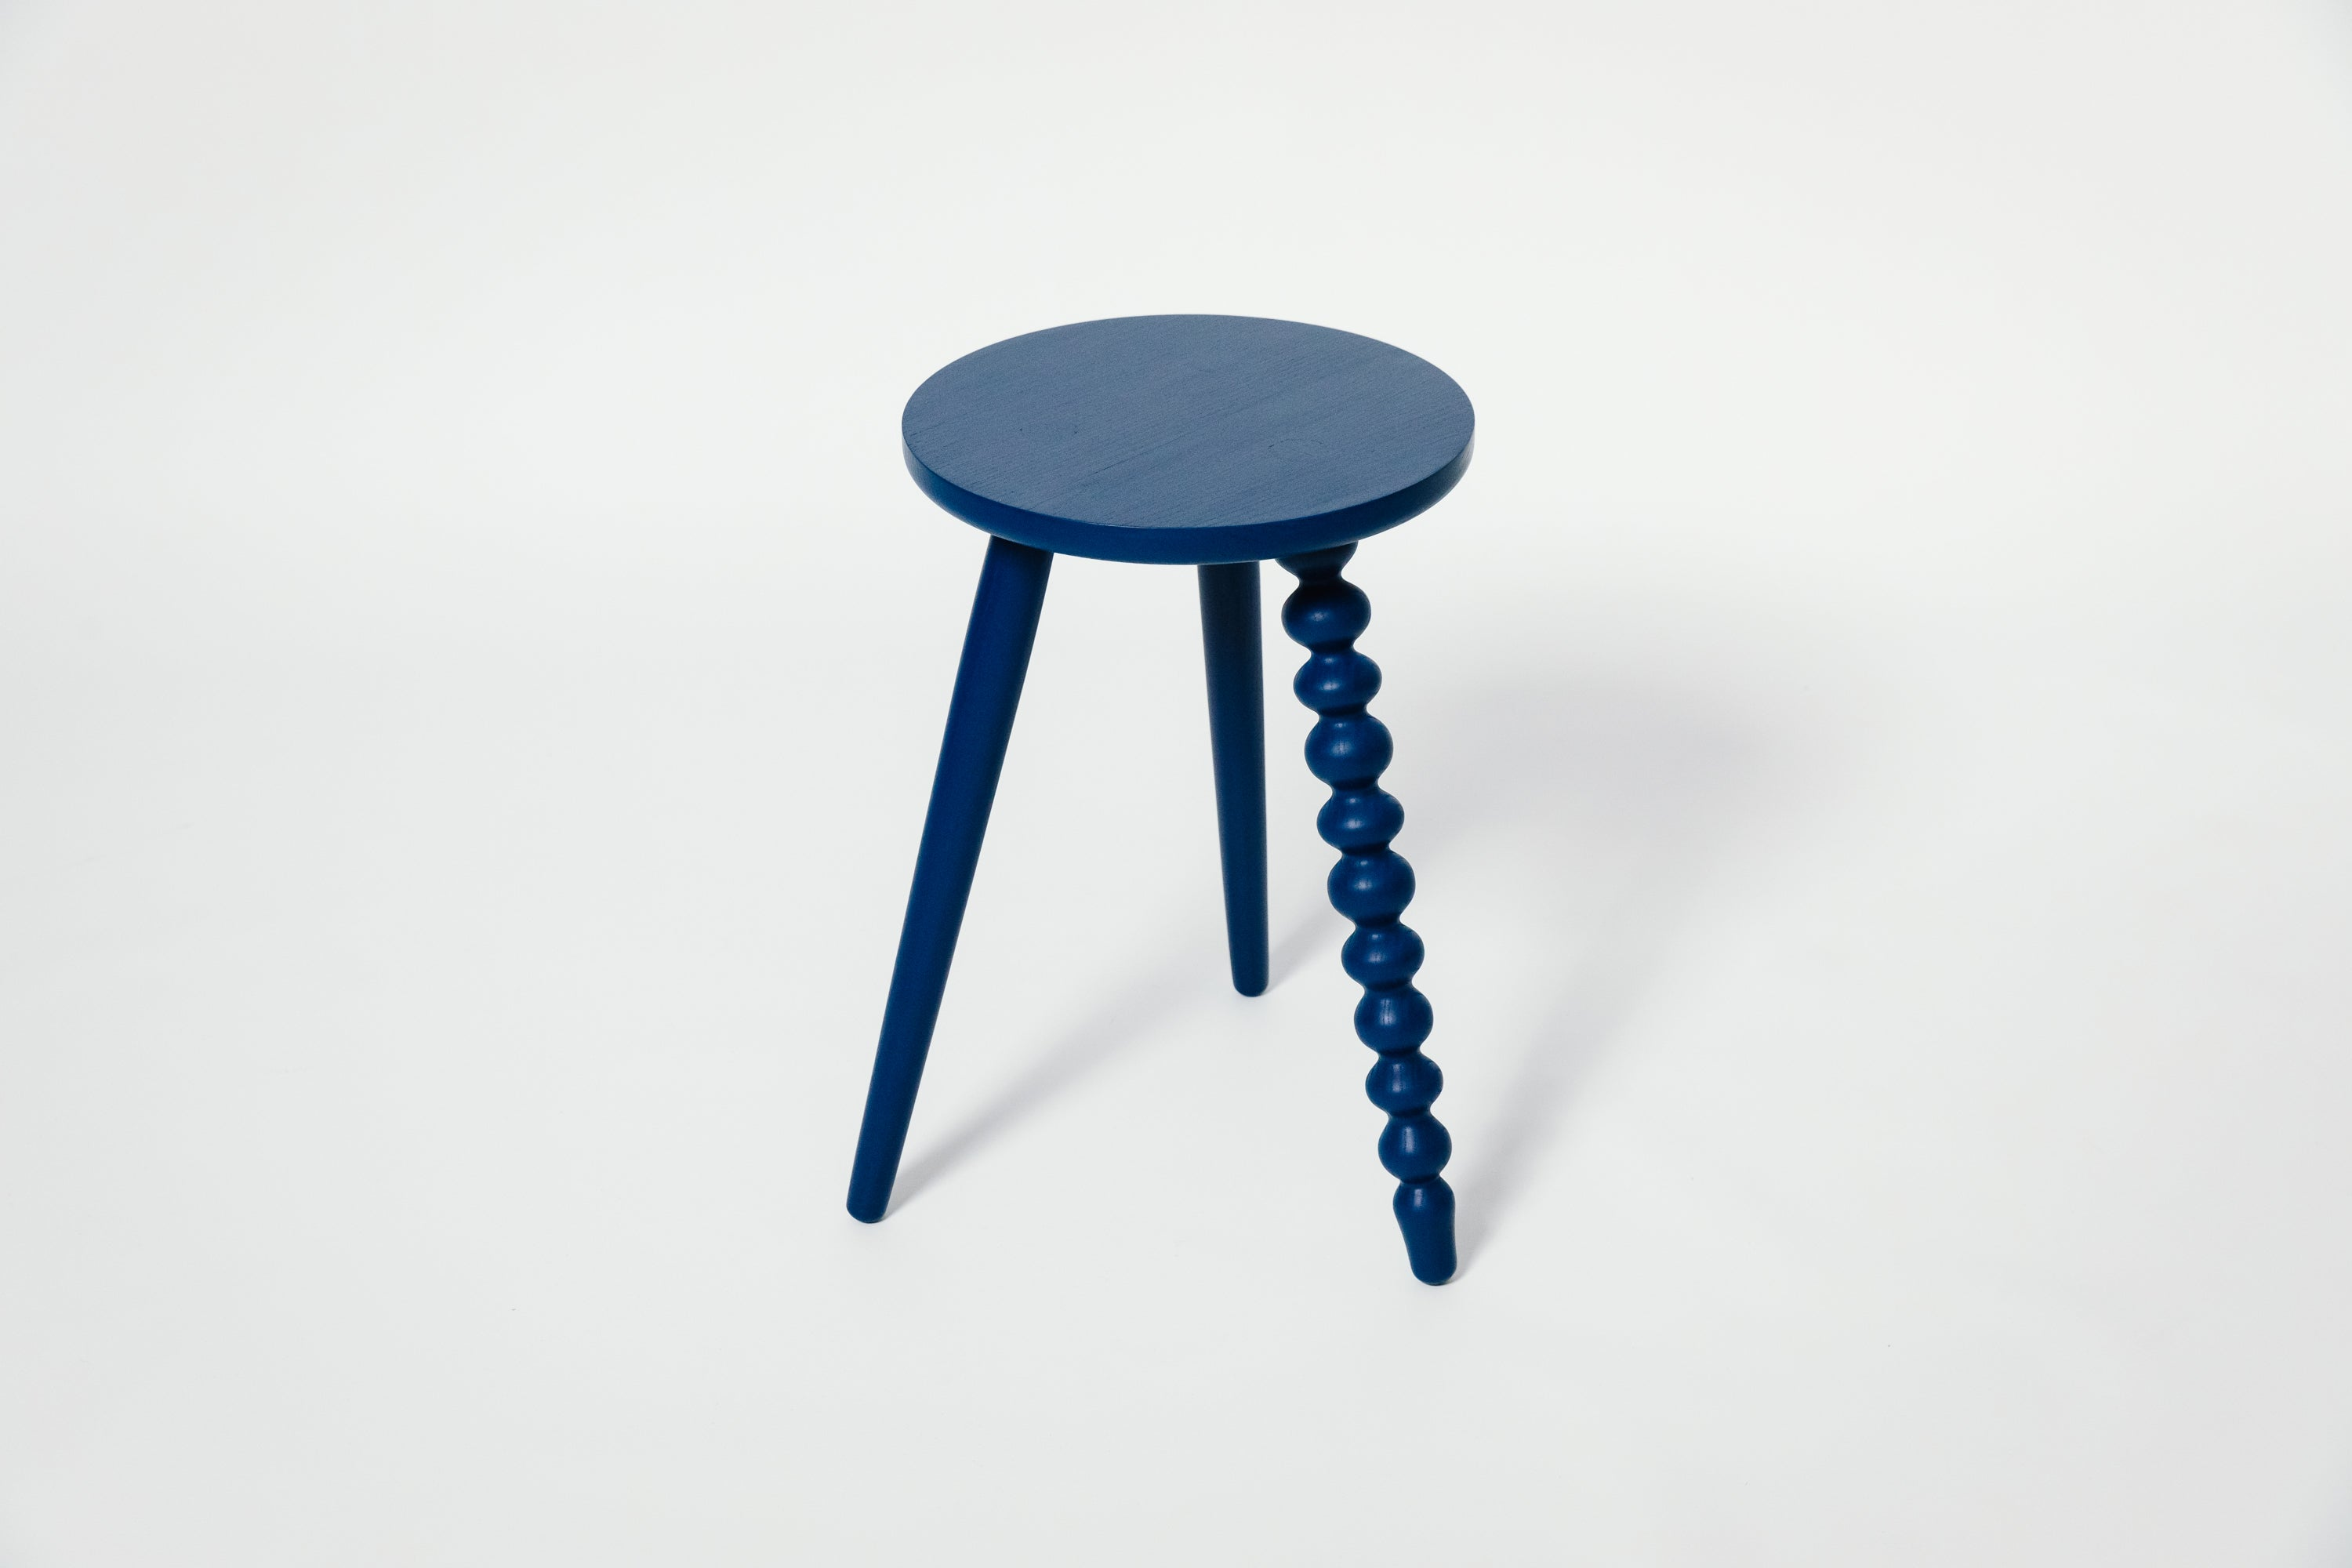 Limited edition, (5013) Imperfect Stool